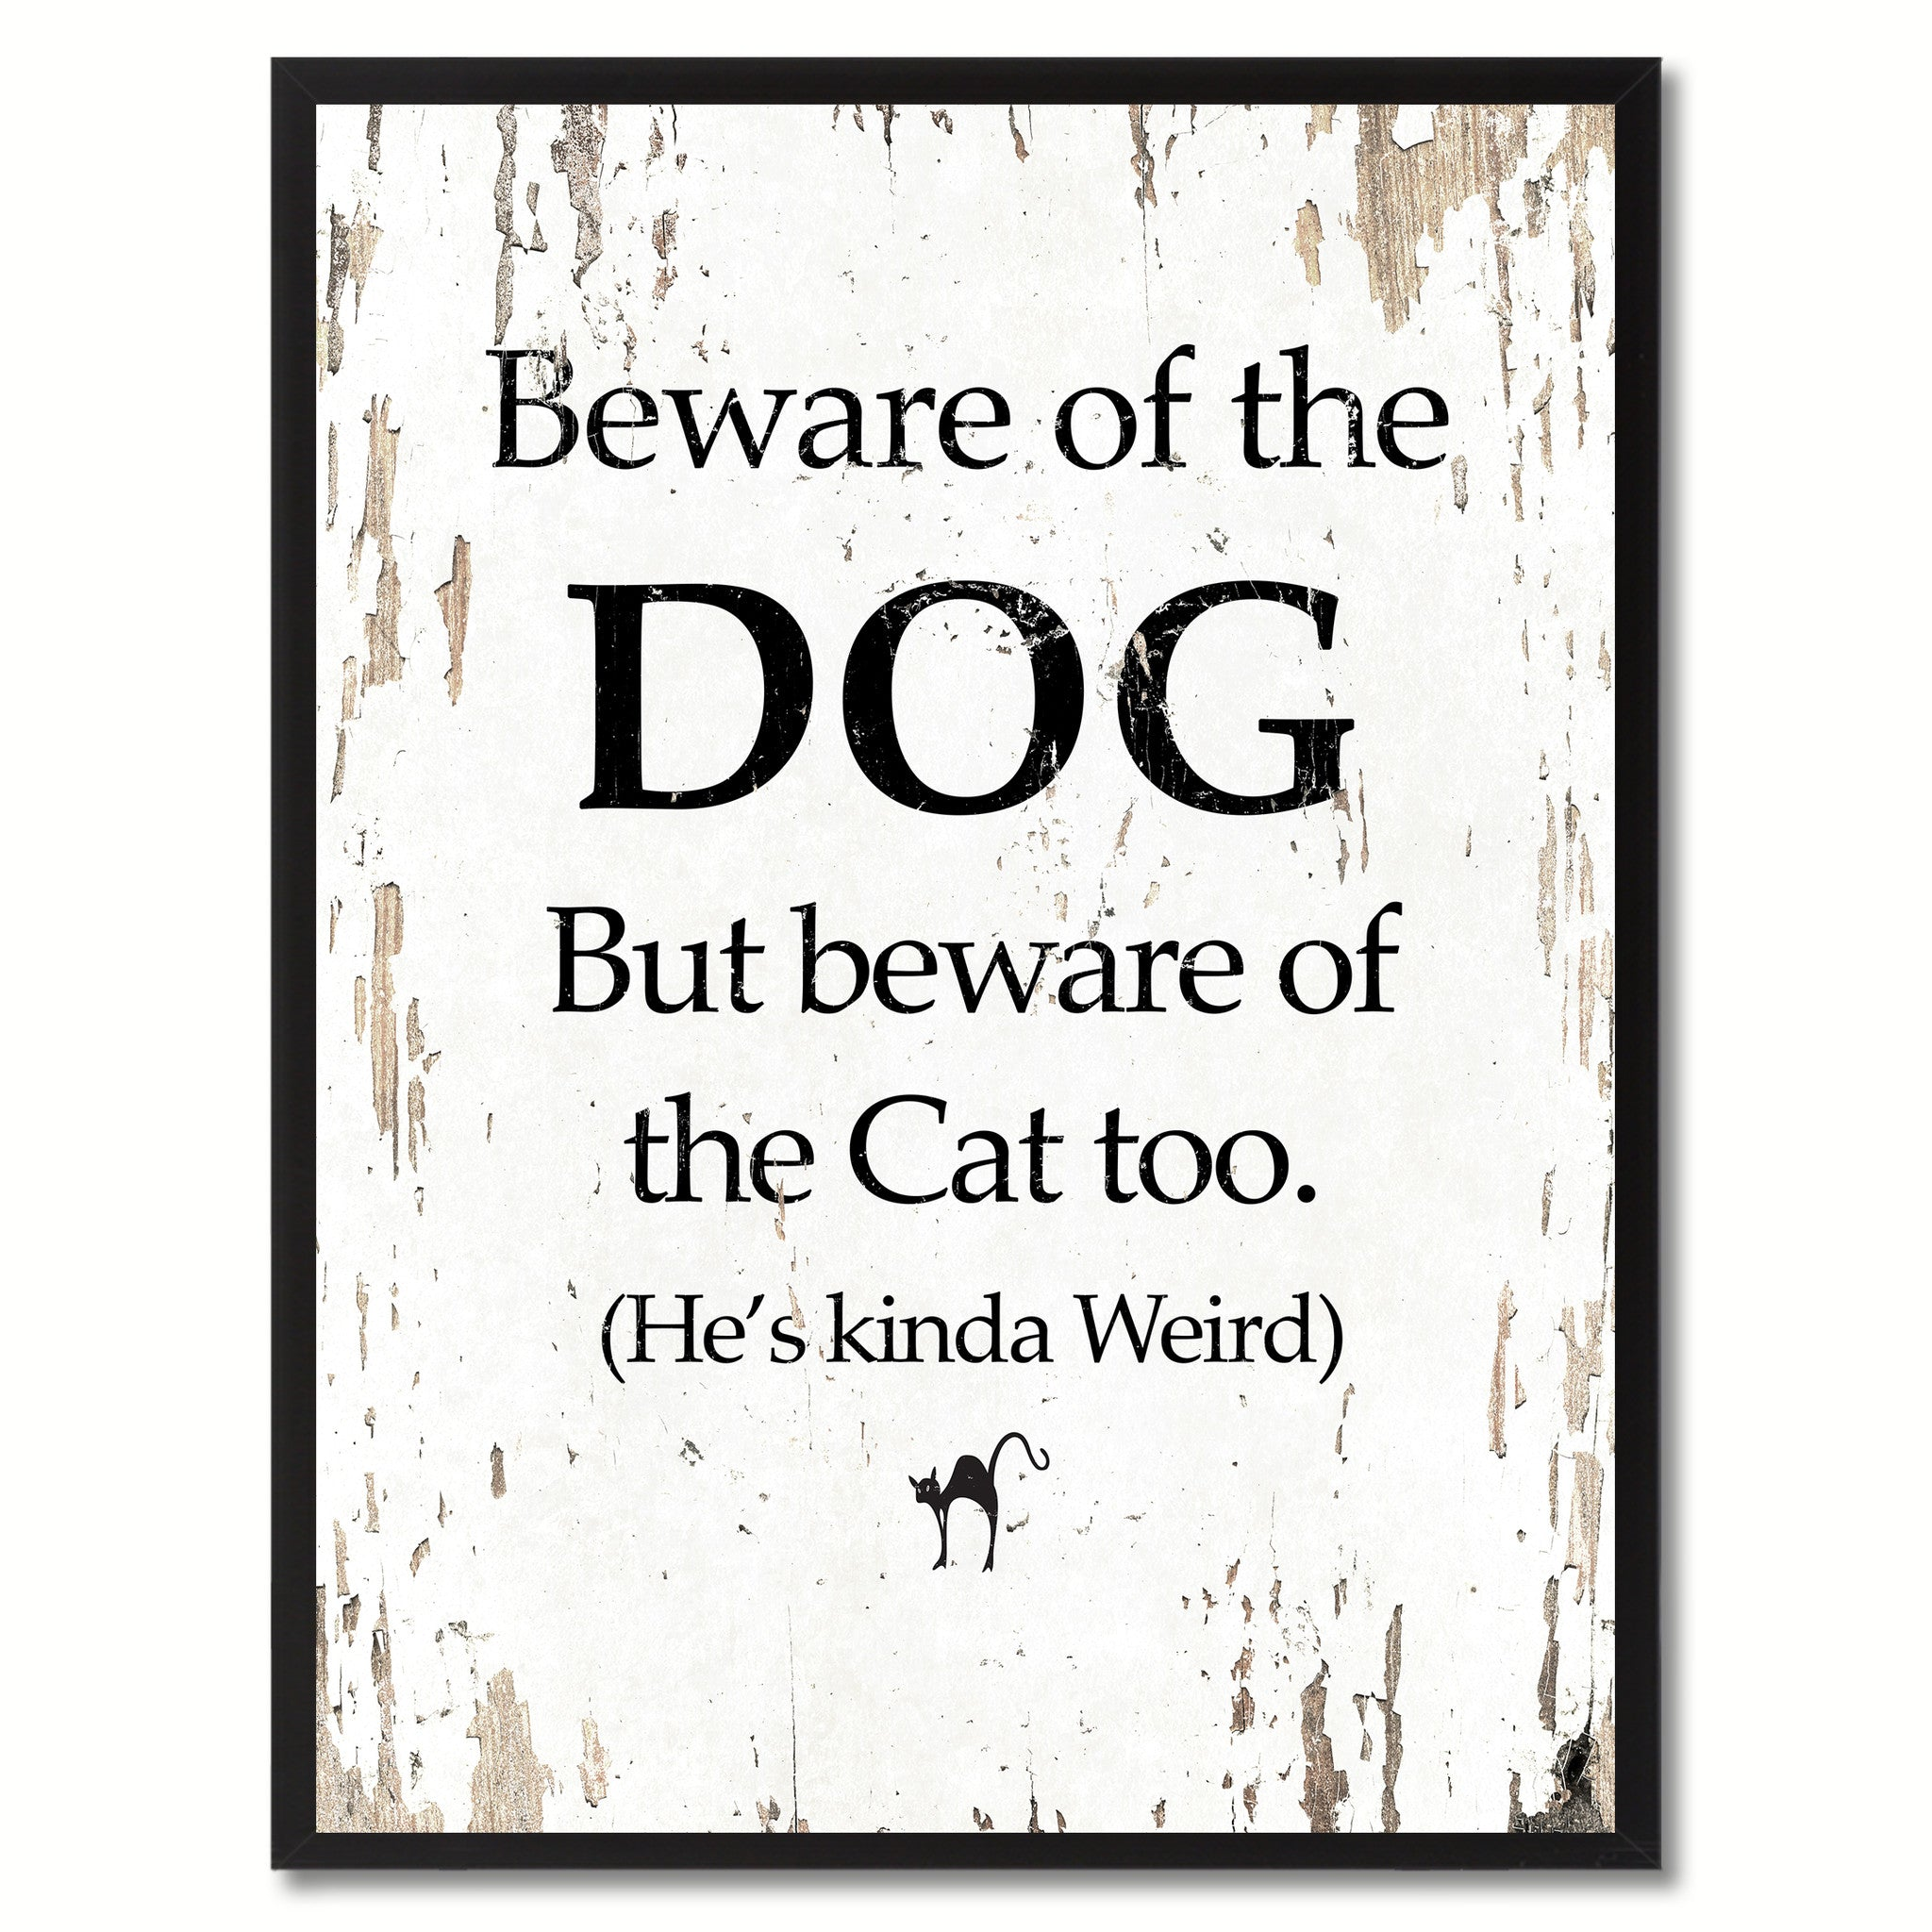 Beware of the dog but beware of the cat too He's kinda weird Funny Quote Saying Gift Ideas Home Decor Wall Art